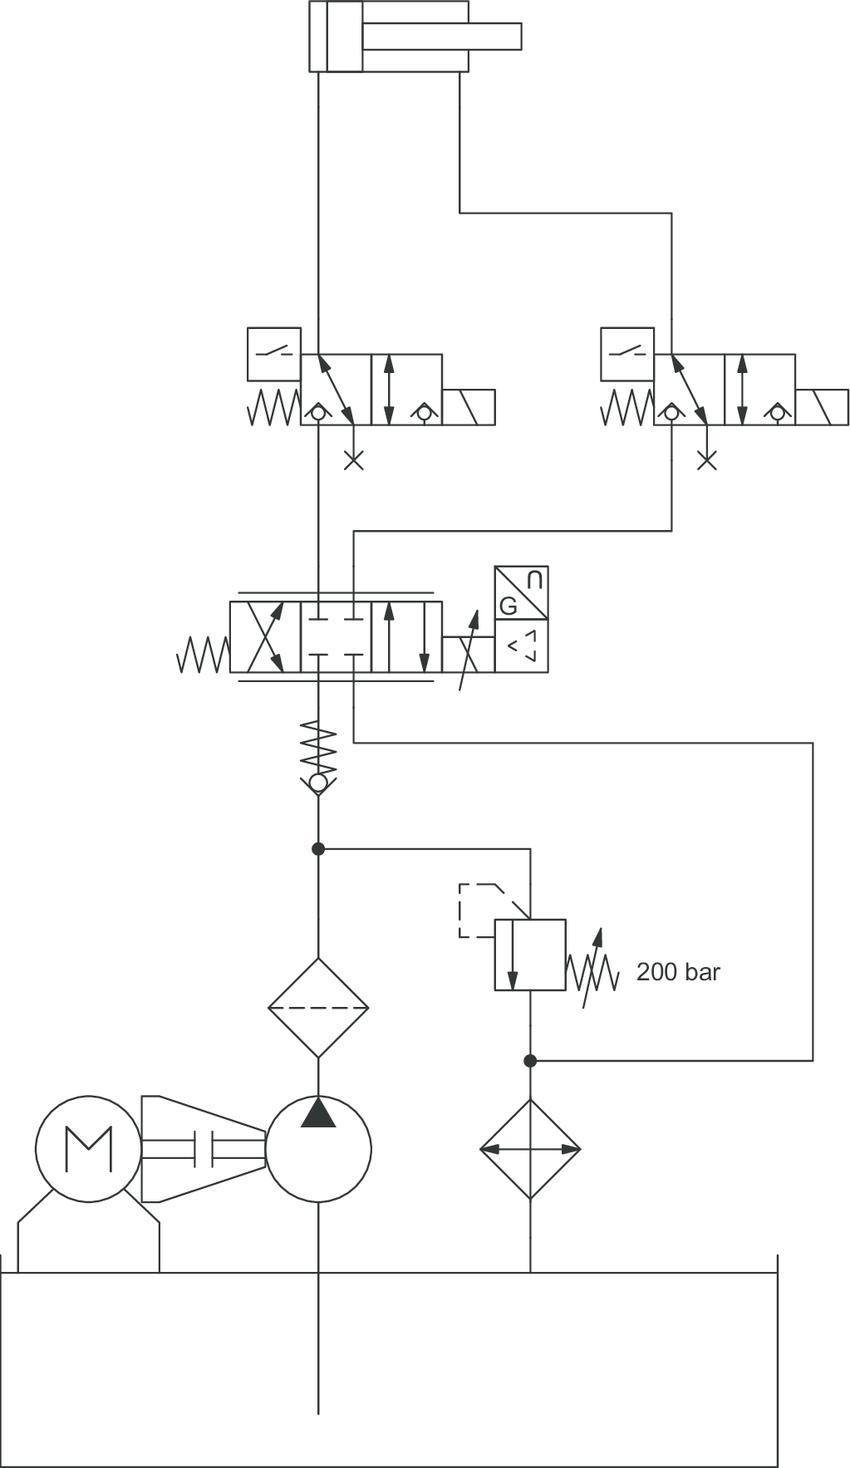 medium resolution of 2 hydraulic circuit diagram for a press